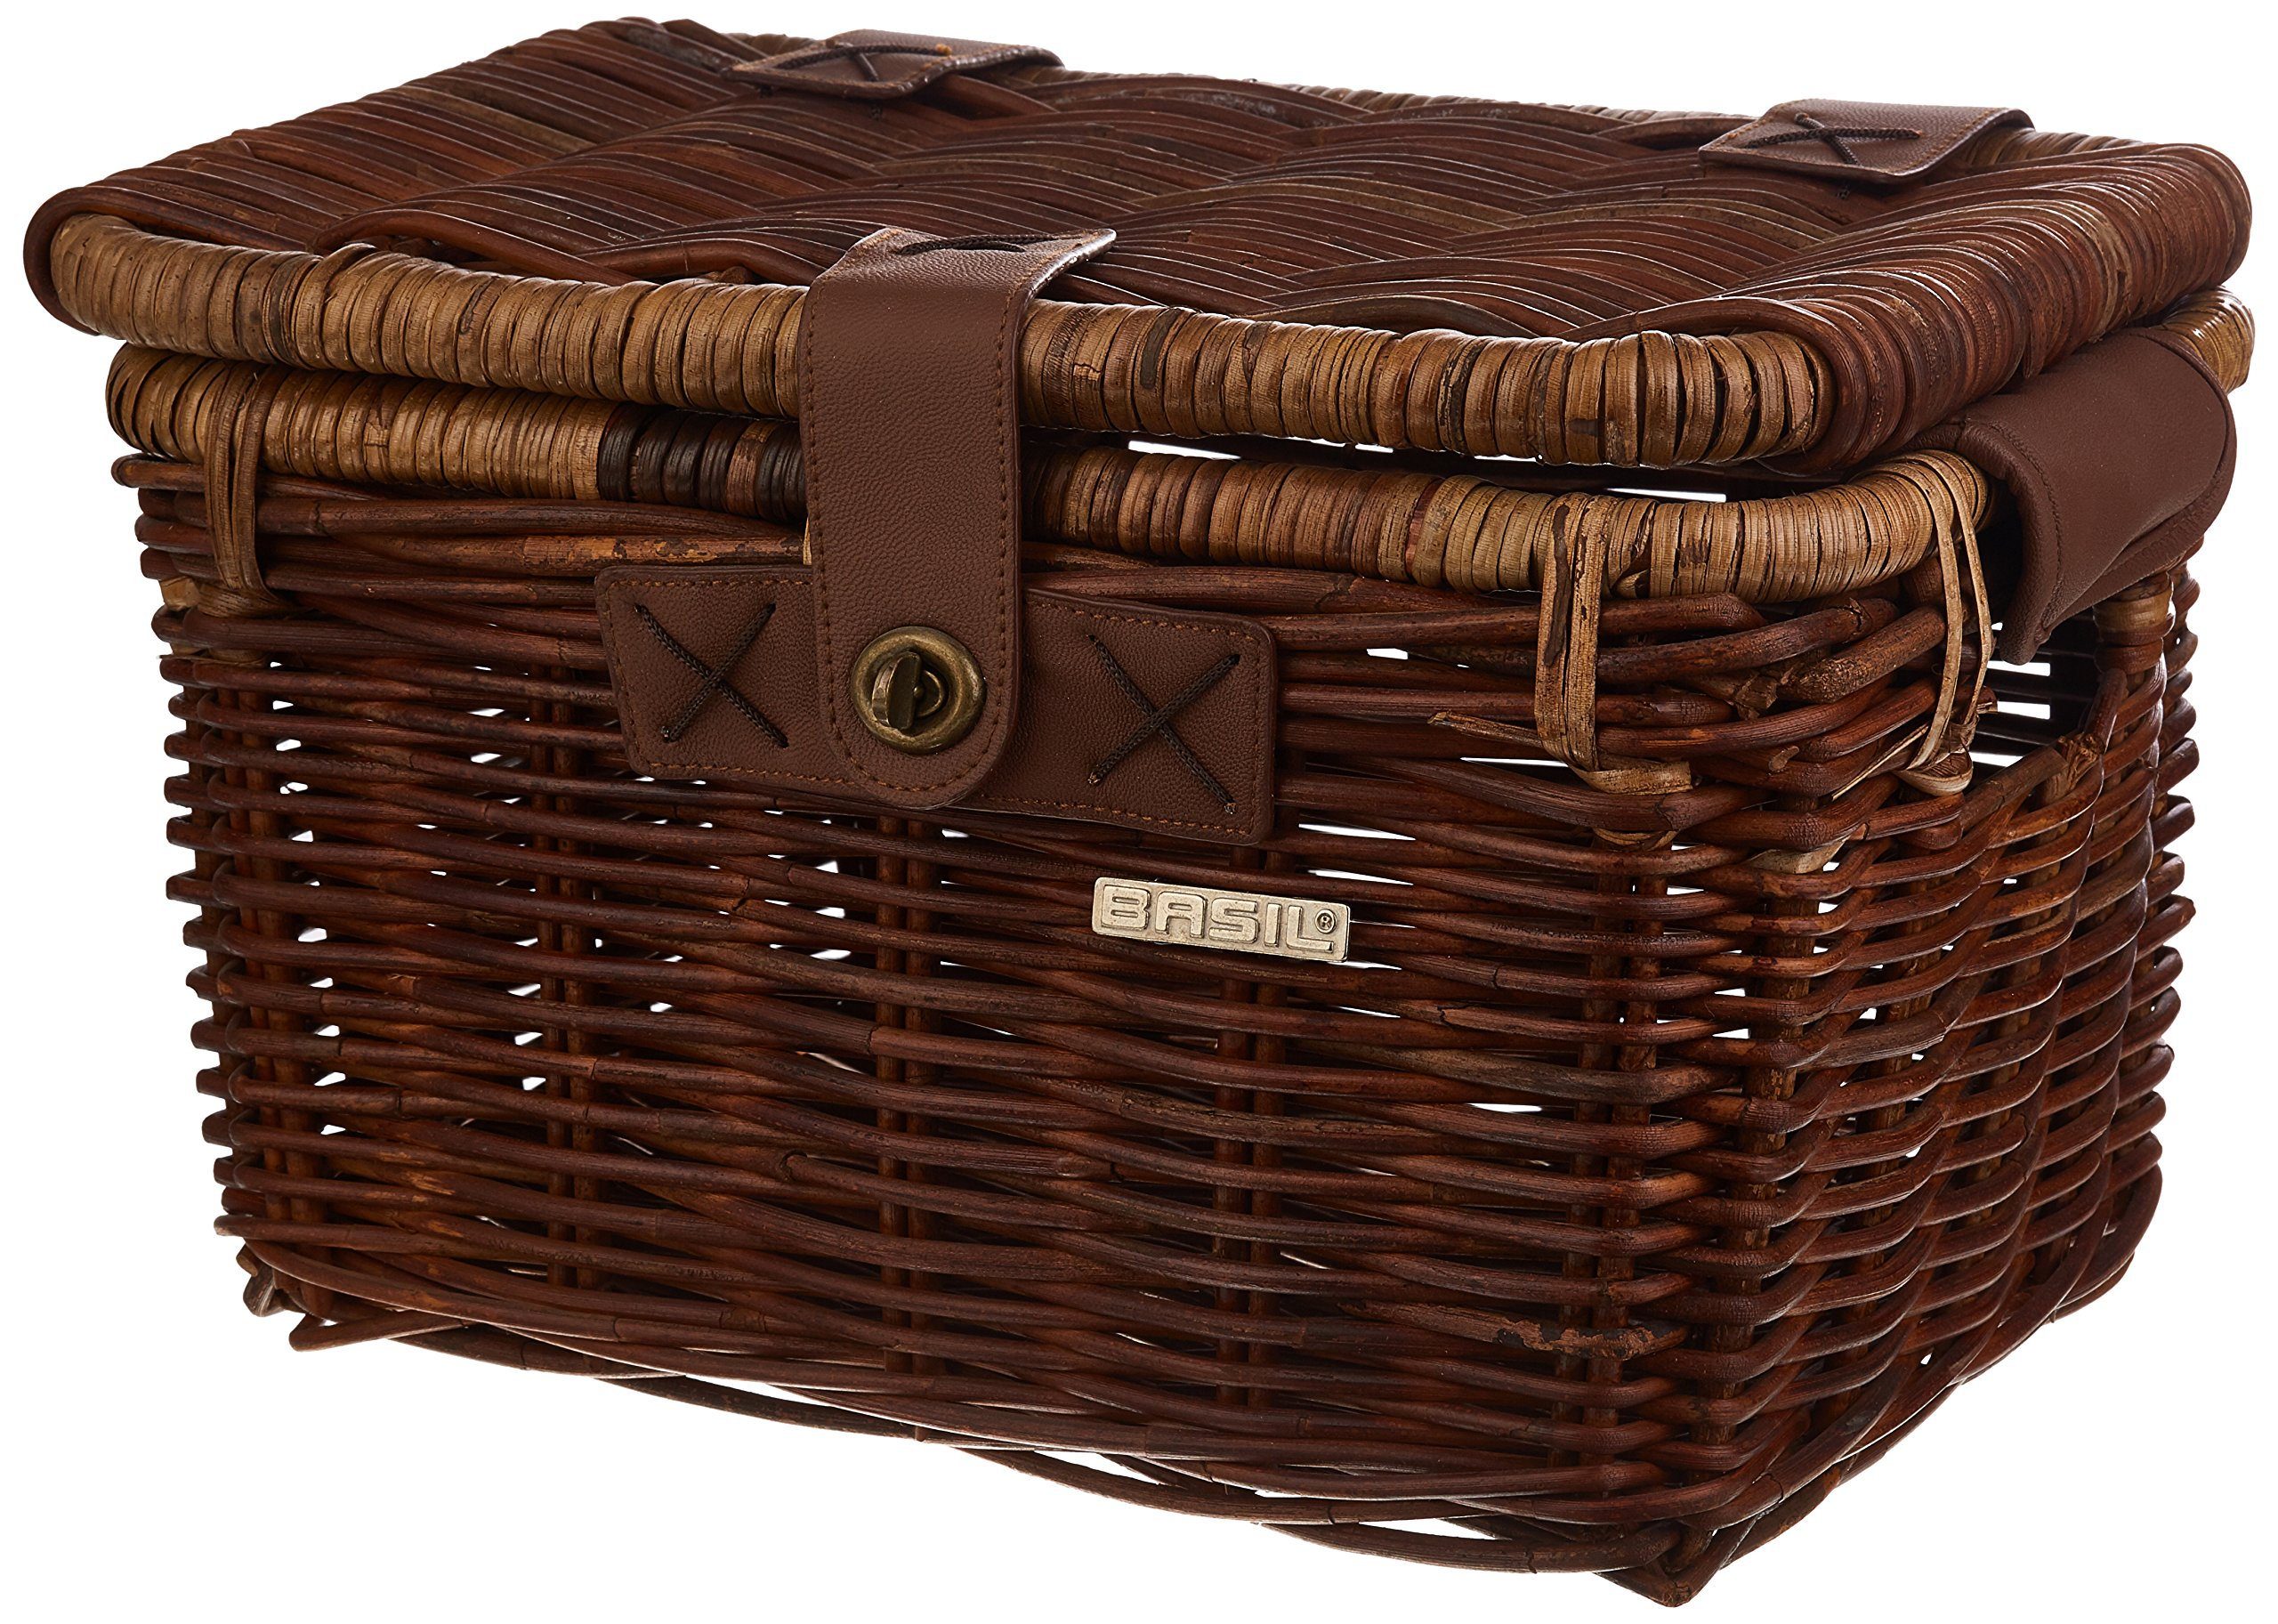 Bell Basil Denton Small Wicker Bicycle Basket with Lid, Nature Brown